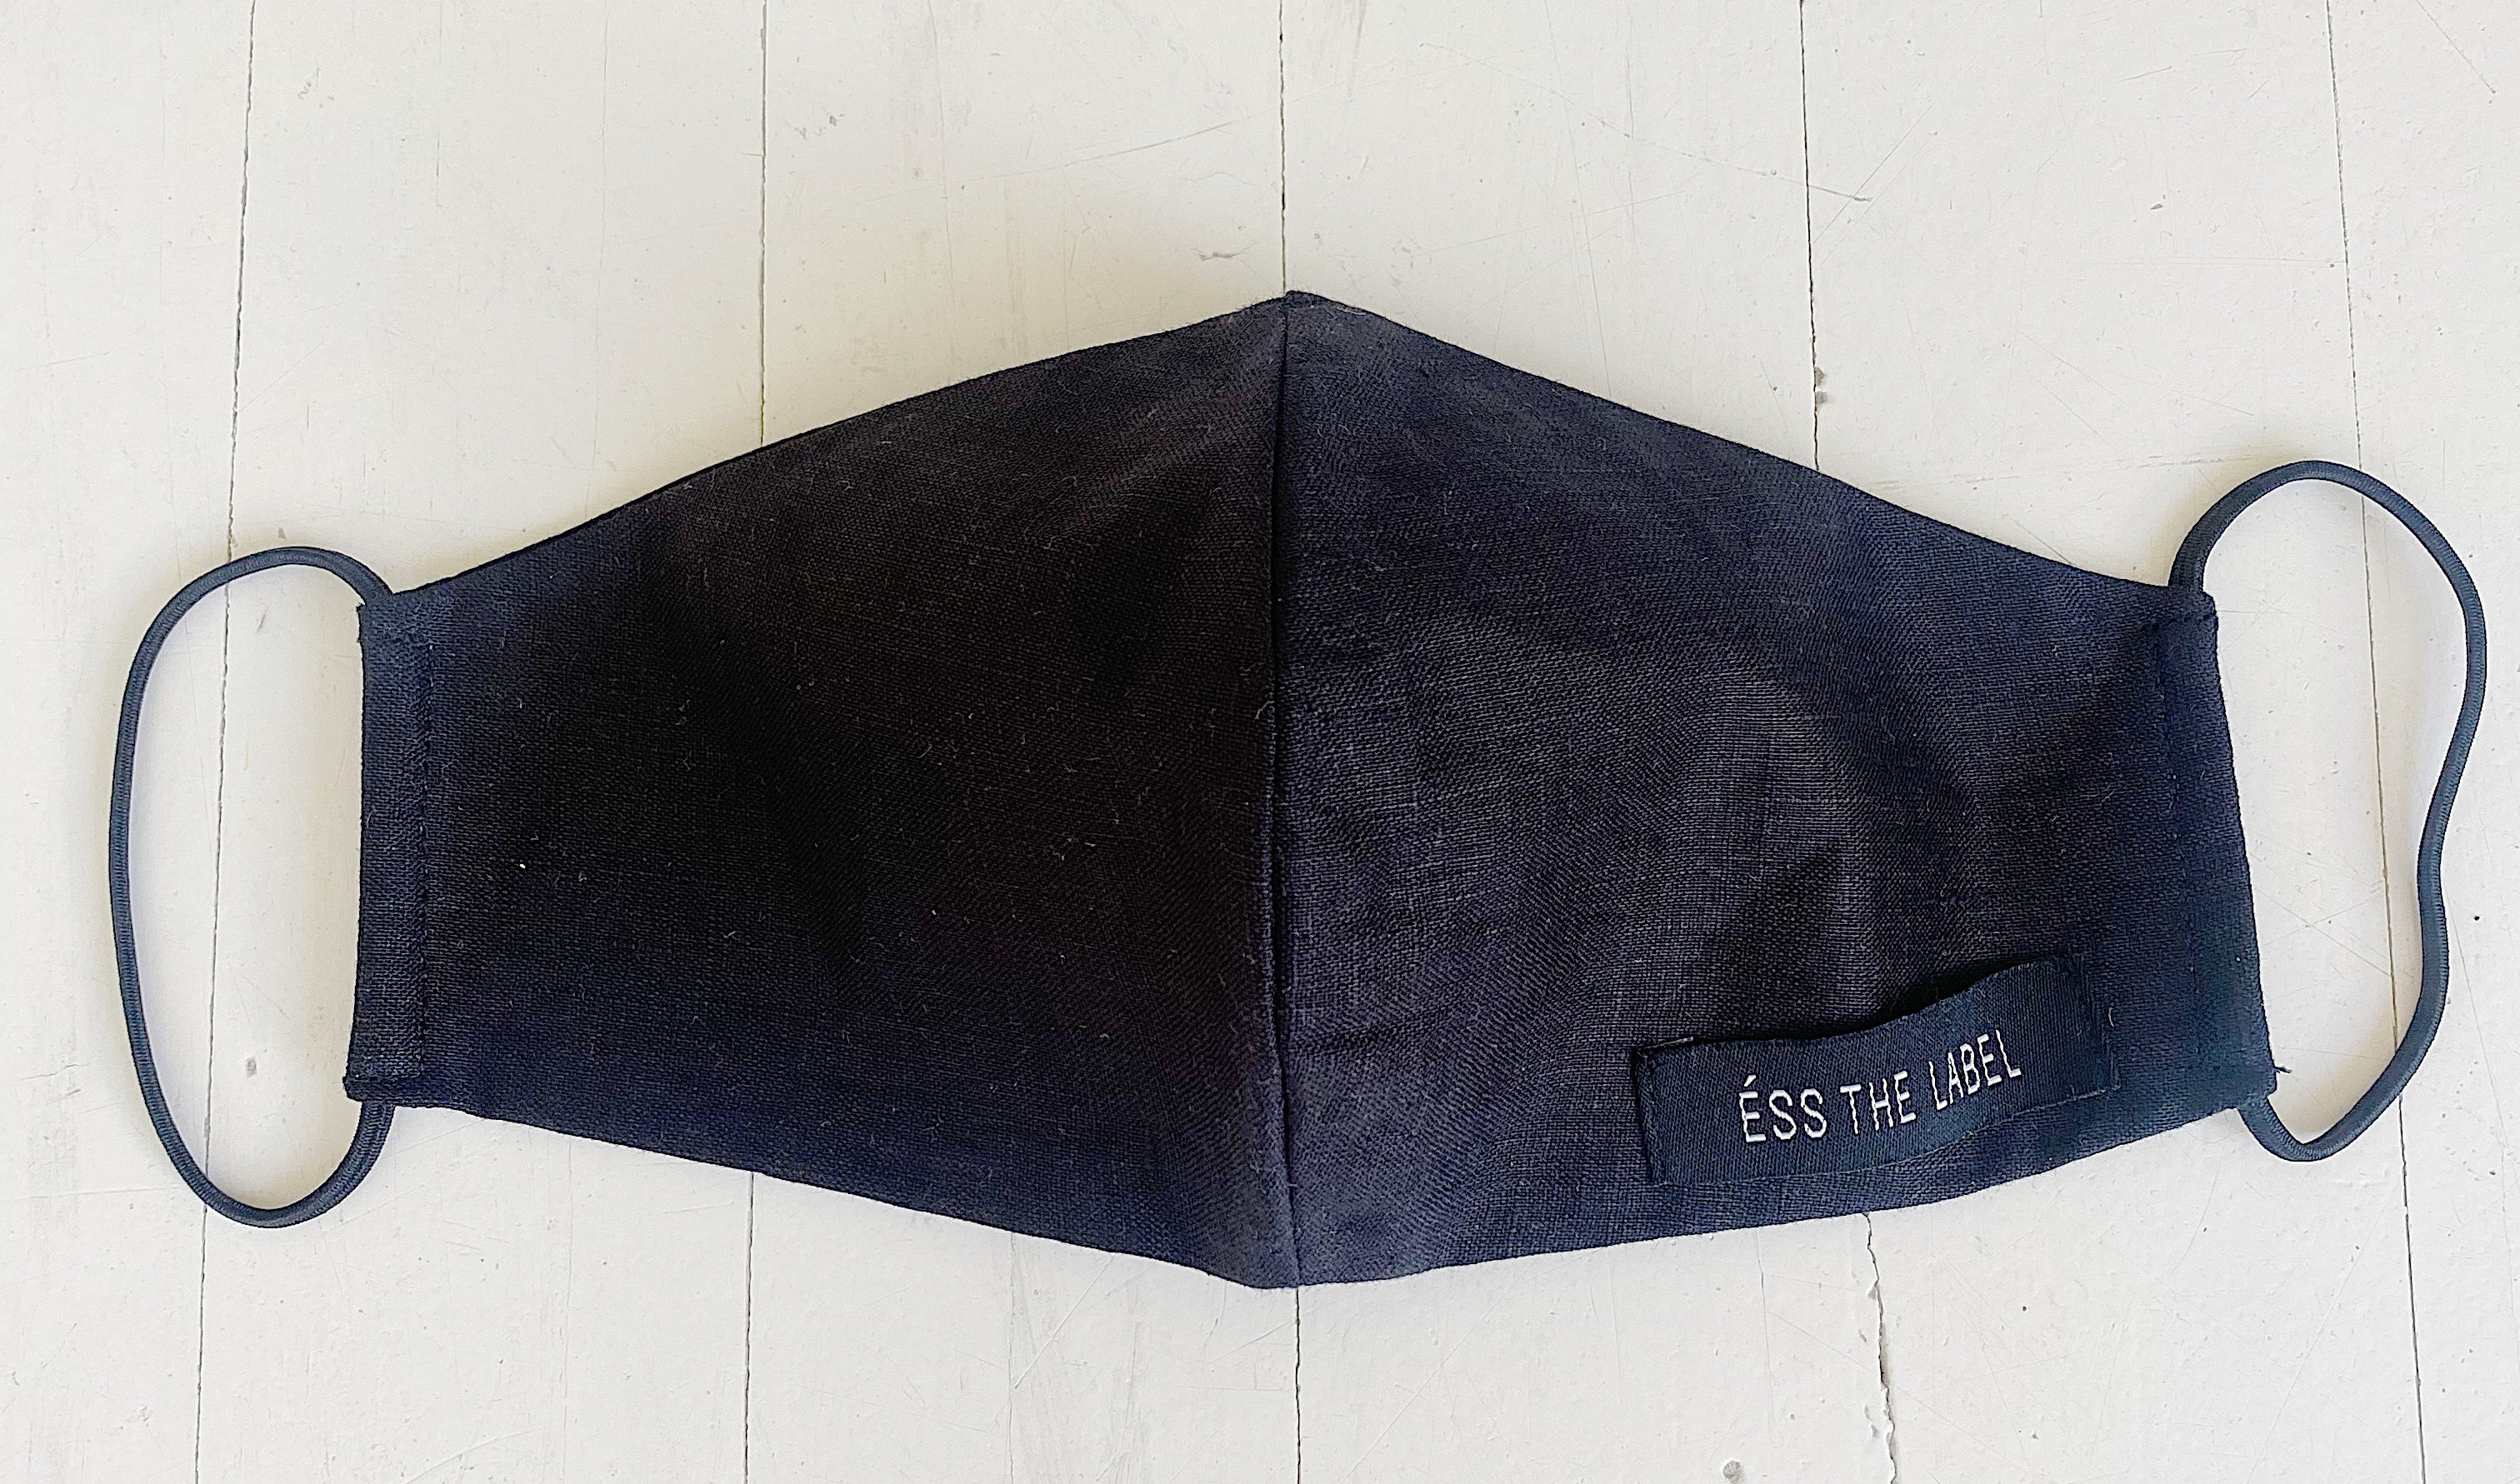 FREE GWP ÉSS THE LABEL Linen Face Mask - Black